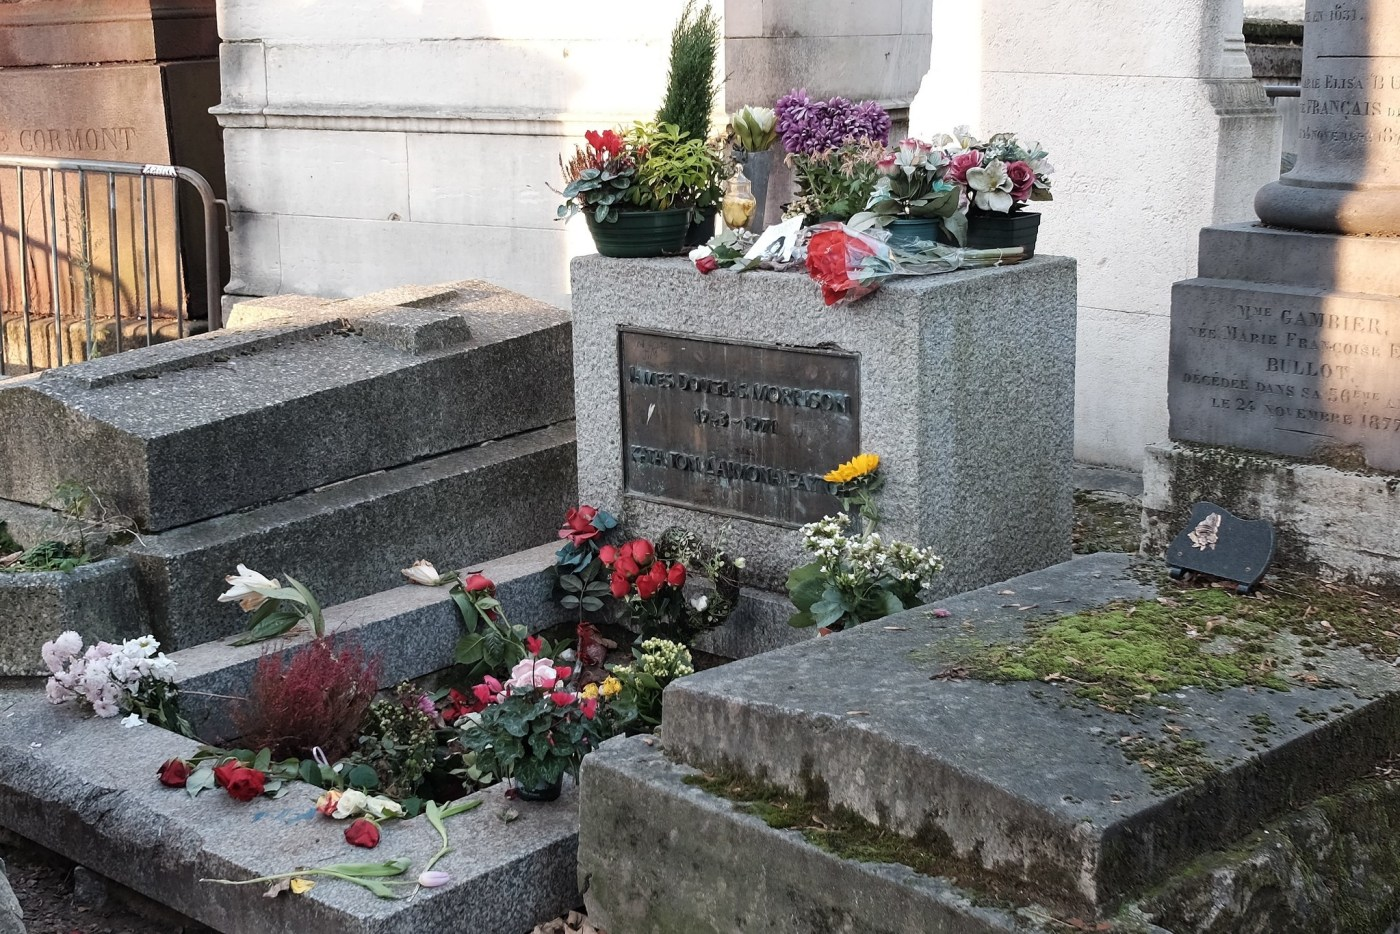 Jim Morrison's grave at the Père Lachaise Cemetery in Paris which is also where Breguet is buried